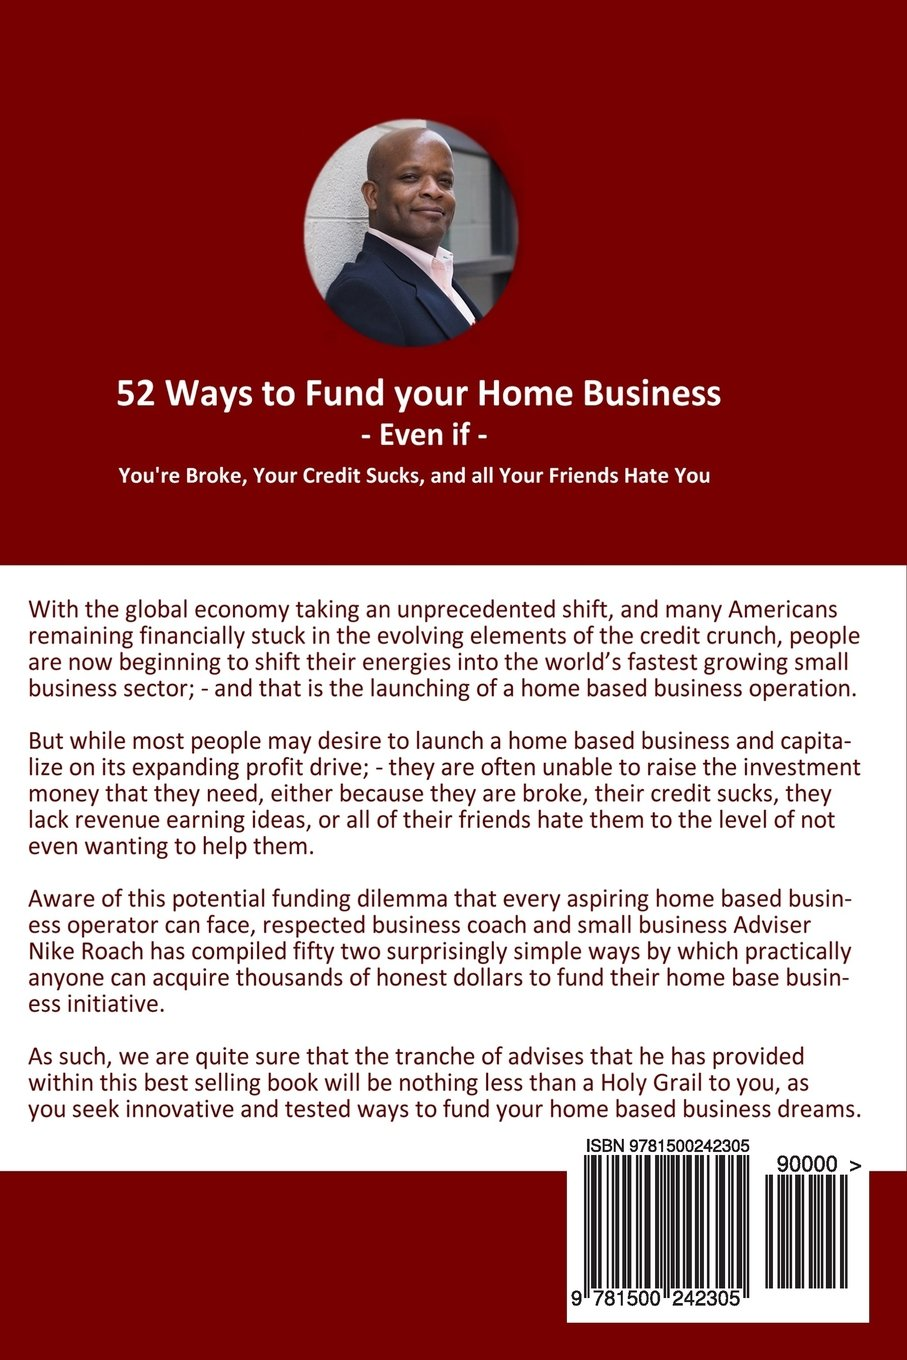 52 Ways To Fund Your Home Based Business Even If You're Broke, Your